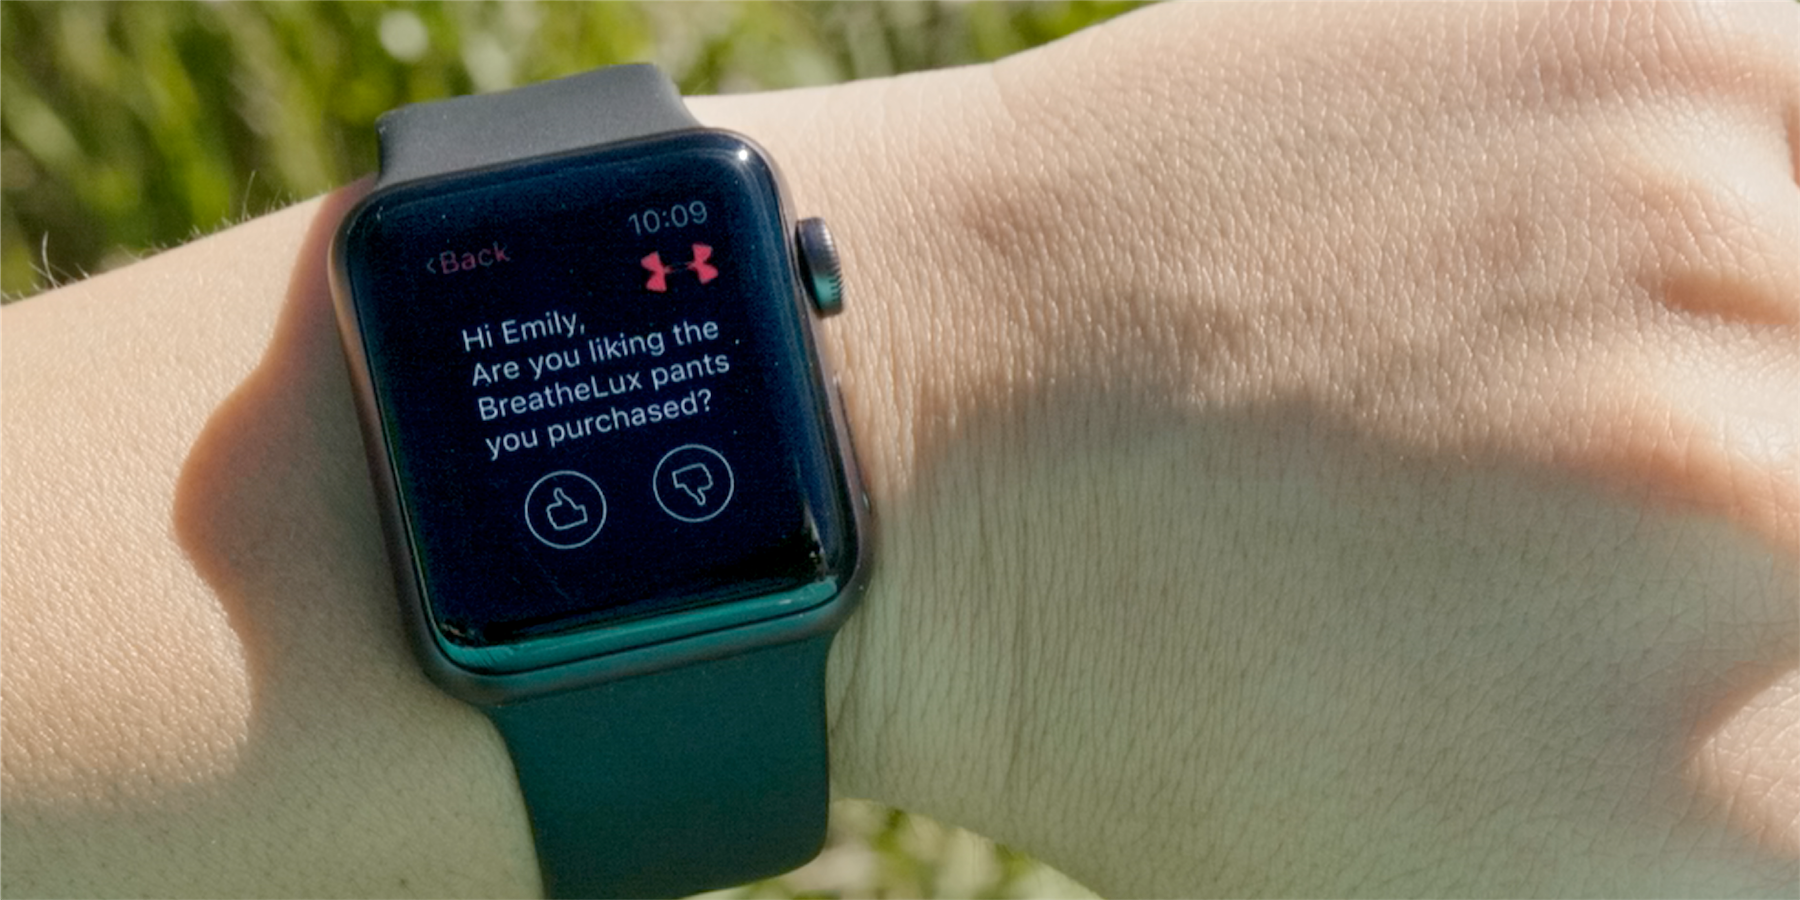 Apple Watch app asks user for feedback